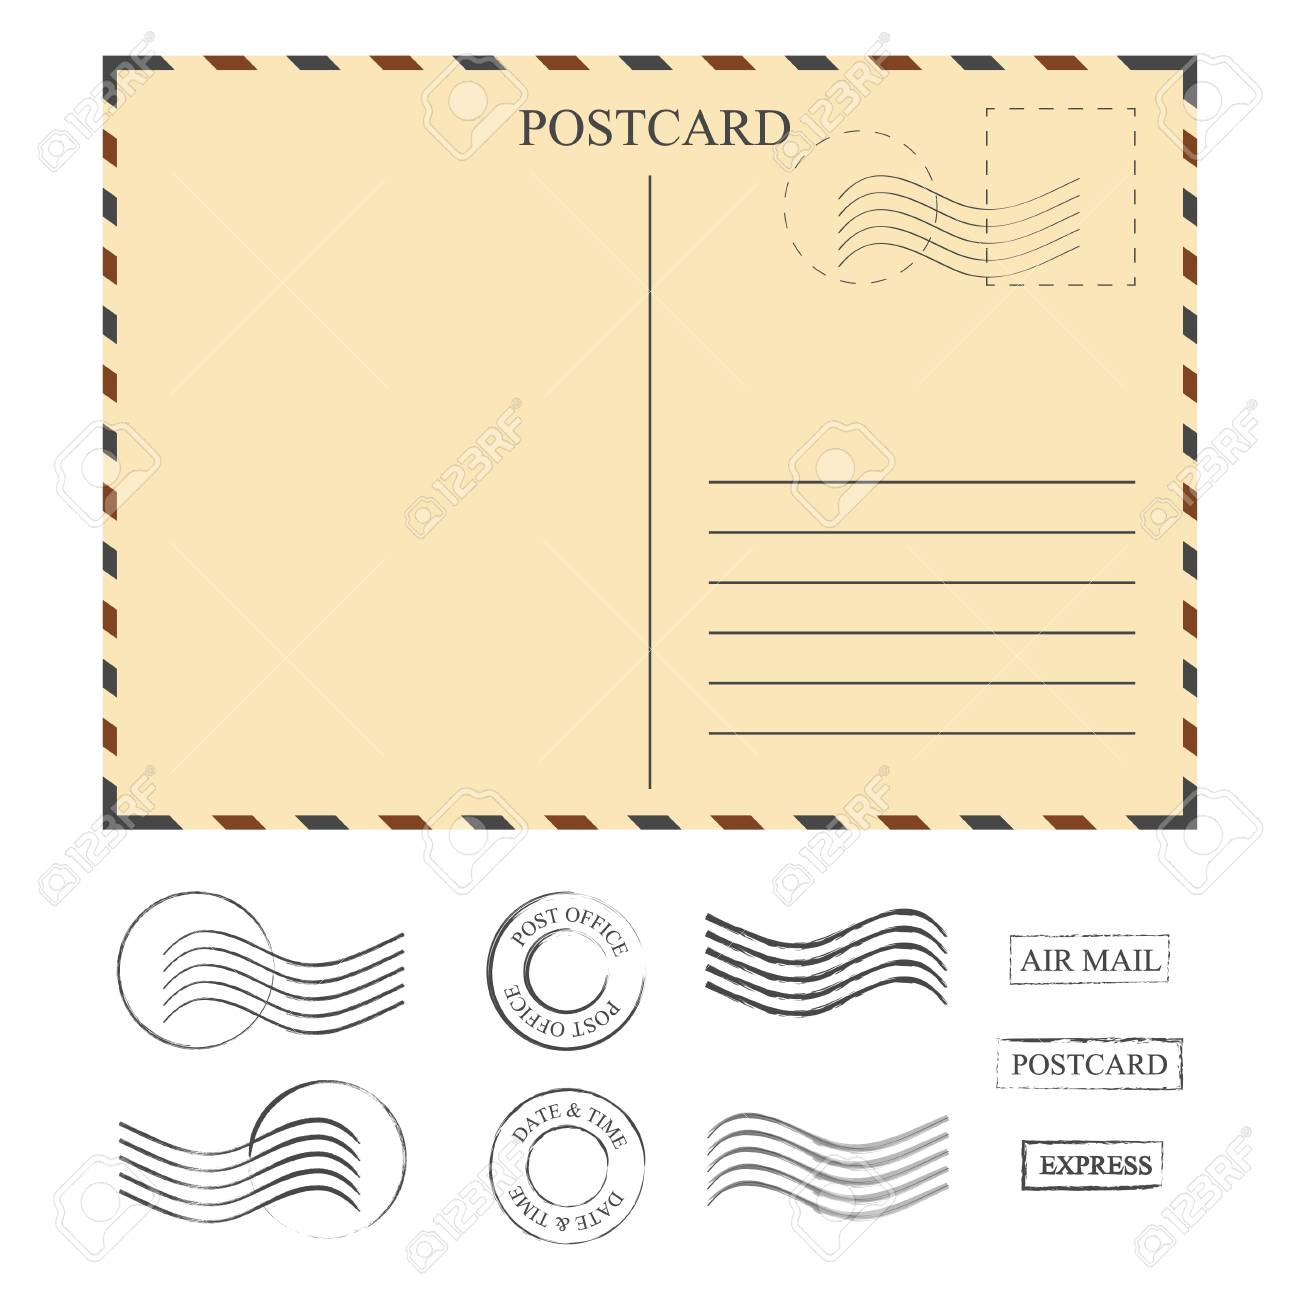 Vintage Postcard With Stamps Template Set Of Stamps Vector